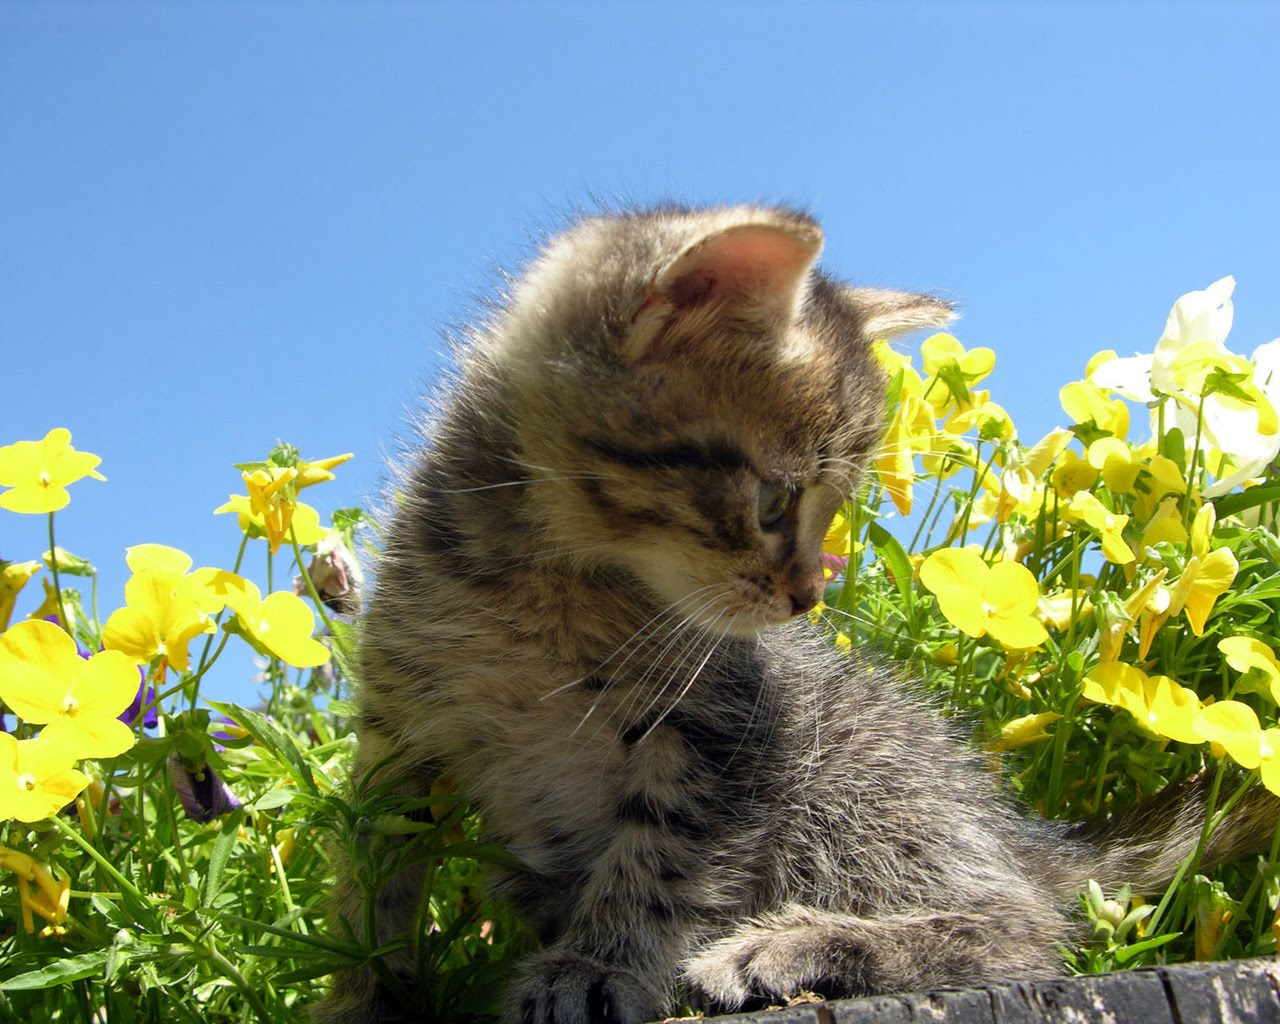 Cute Fairy Wallpaper 3d Strictly Wallpaper Wallpapers For Cat Lovers 4